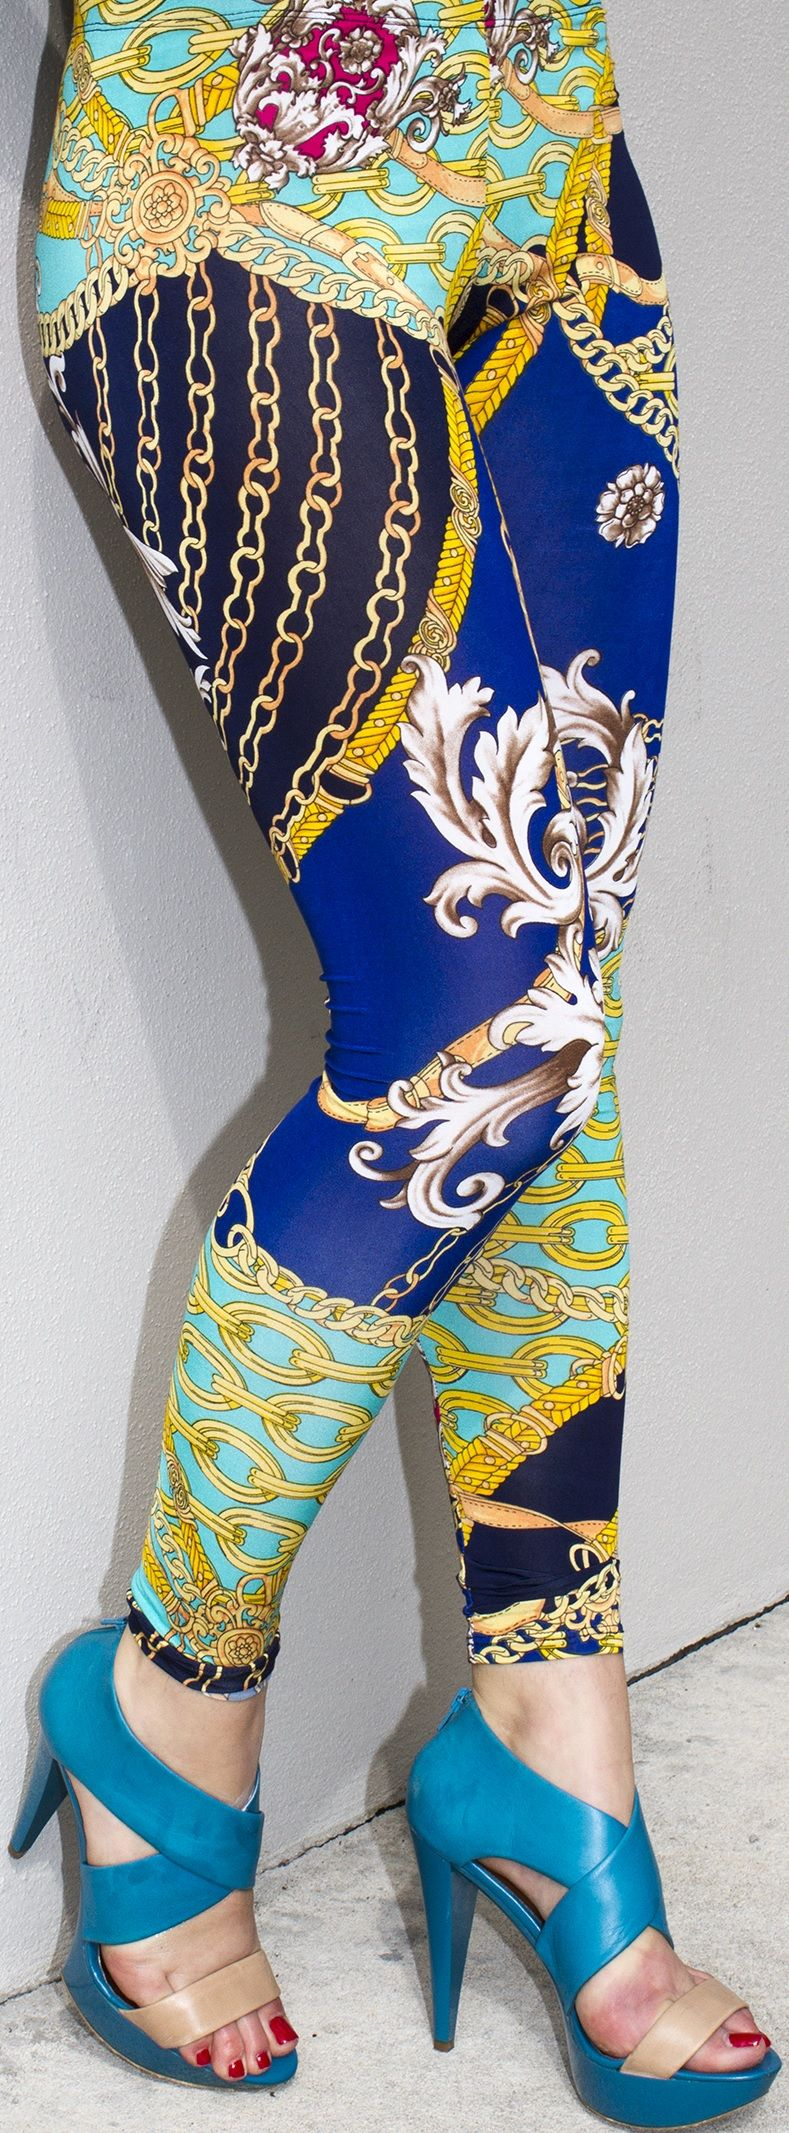 4ebd04166be0a We love our Versace inspired printed leggings in bold blue and multi  colors. Dress them up or down! The choice is yours.